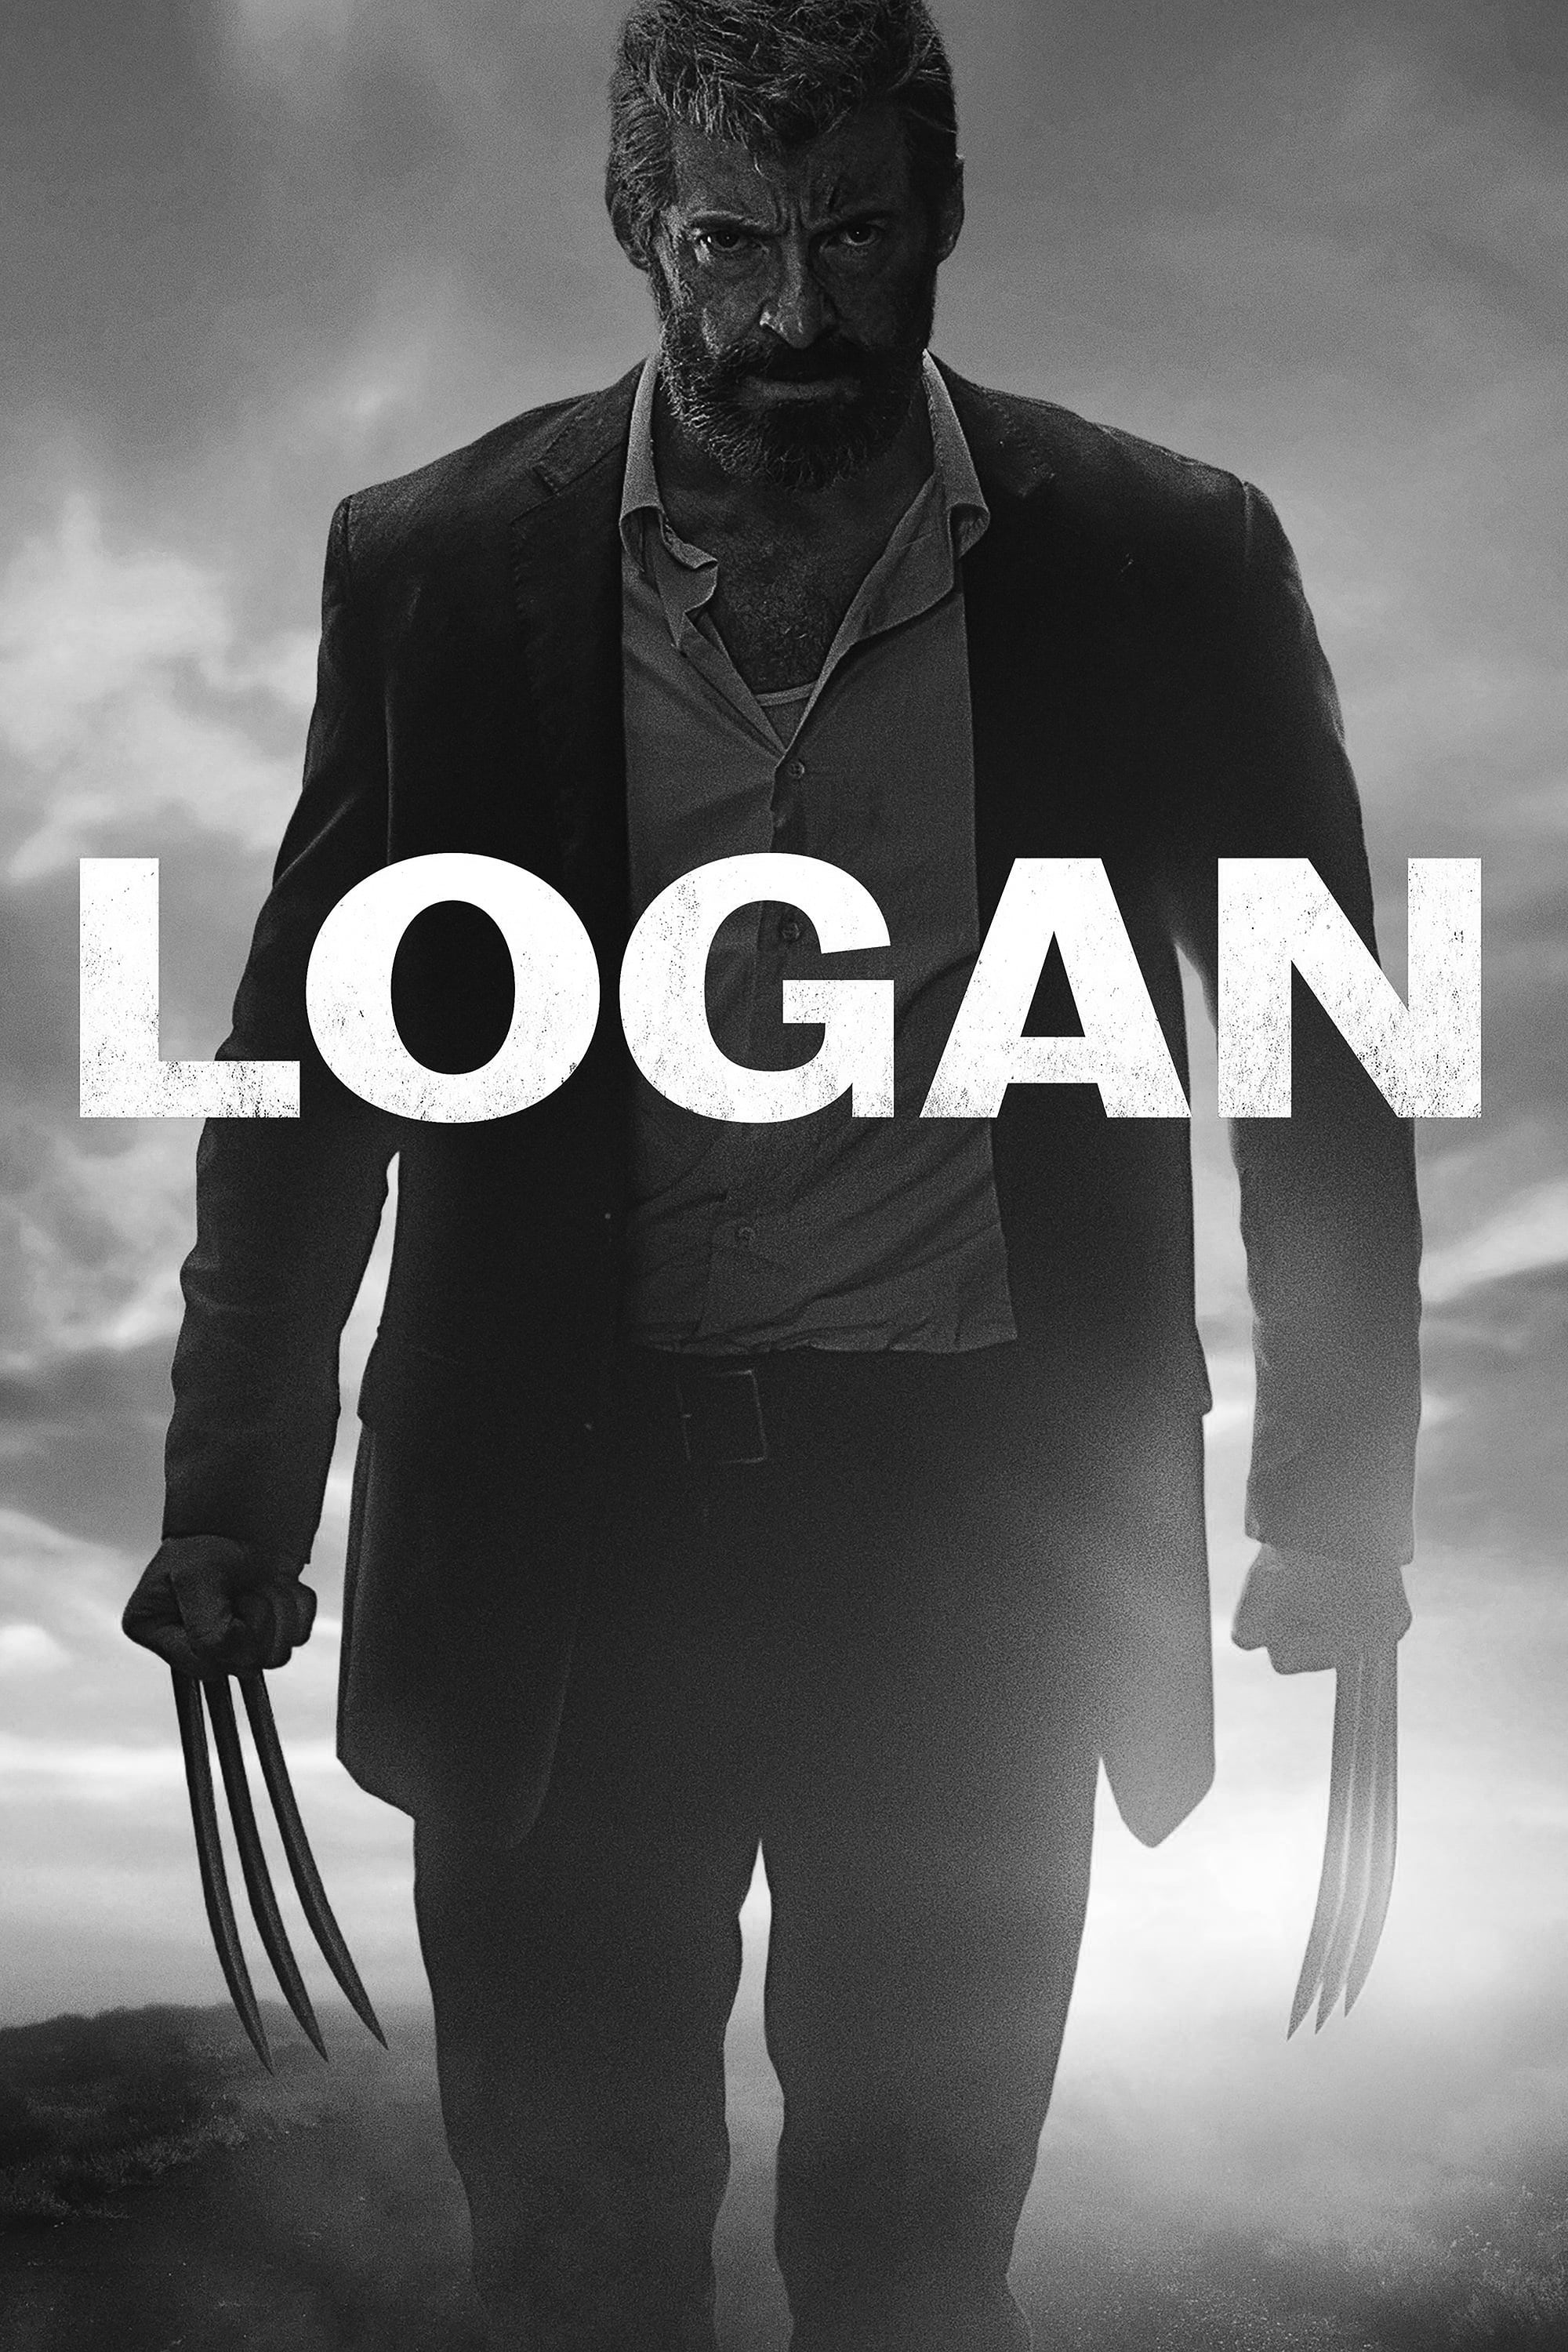 Logan NOIR – Legendado (2017)